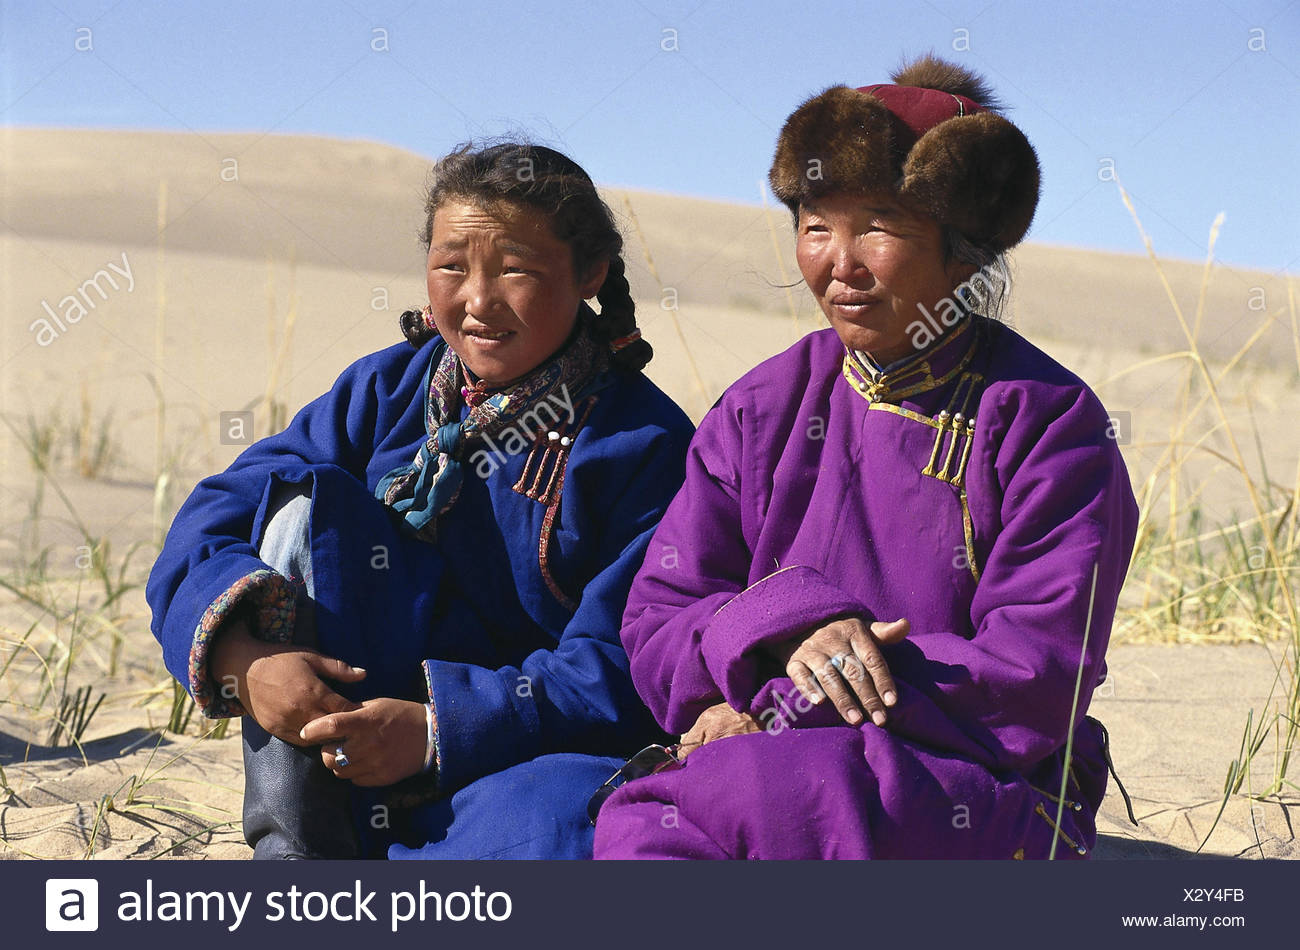 Mongolia, Gobi, desert, nomad, nut, subsidiary, sit, half portrait, dunes, Asia, Central Asia, Central Asia, Sand desert, Sand, Sand dunes, heat, dryness, person, Mongol, Mongols, in Mongolian, woman, girl, family, generations, half nomads, camel nomads, national costume, traditionally, typically, together, Deel, scenery, wild scenery, dune scenery, morning, the morning sun, width, distance, Stock Photo